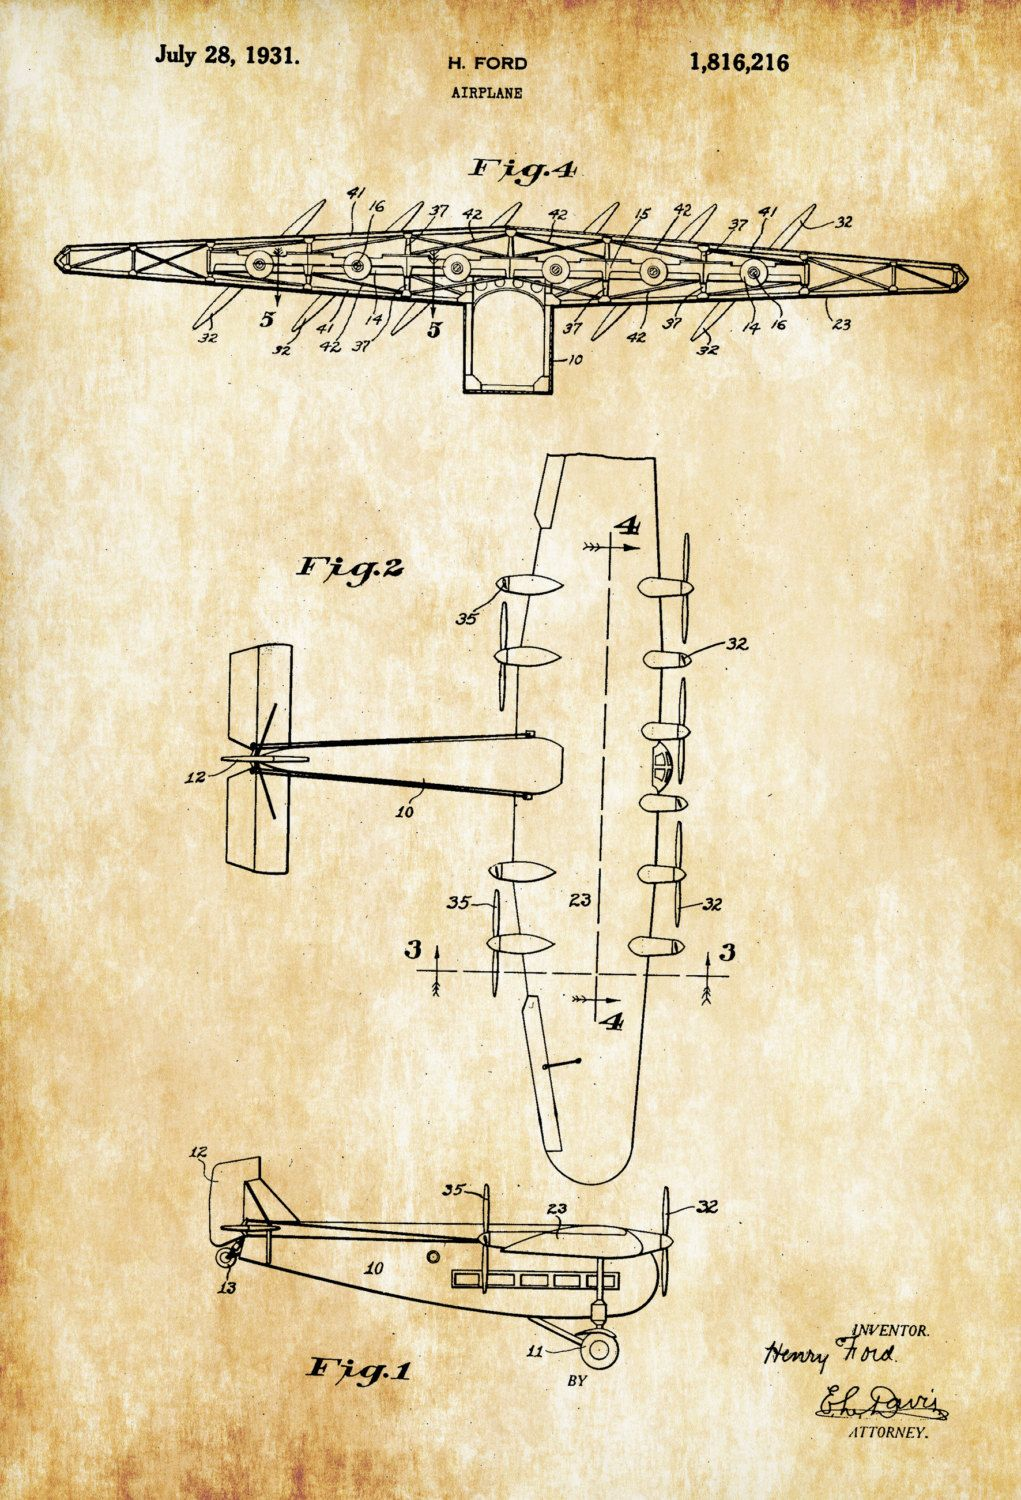 Henry Ford Airplane Patent - Vintage Aviation Art, Airplane Art ...